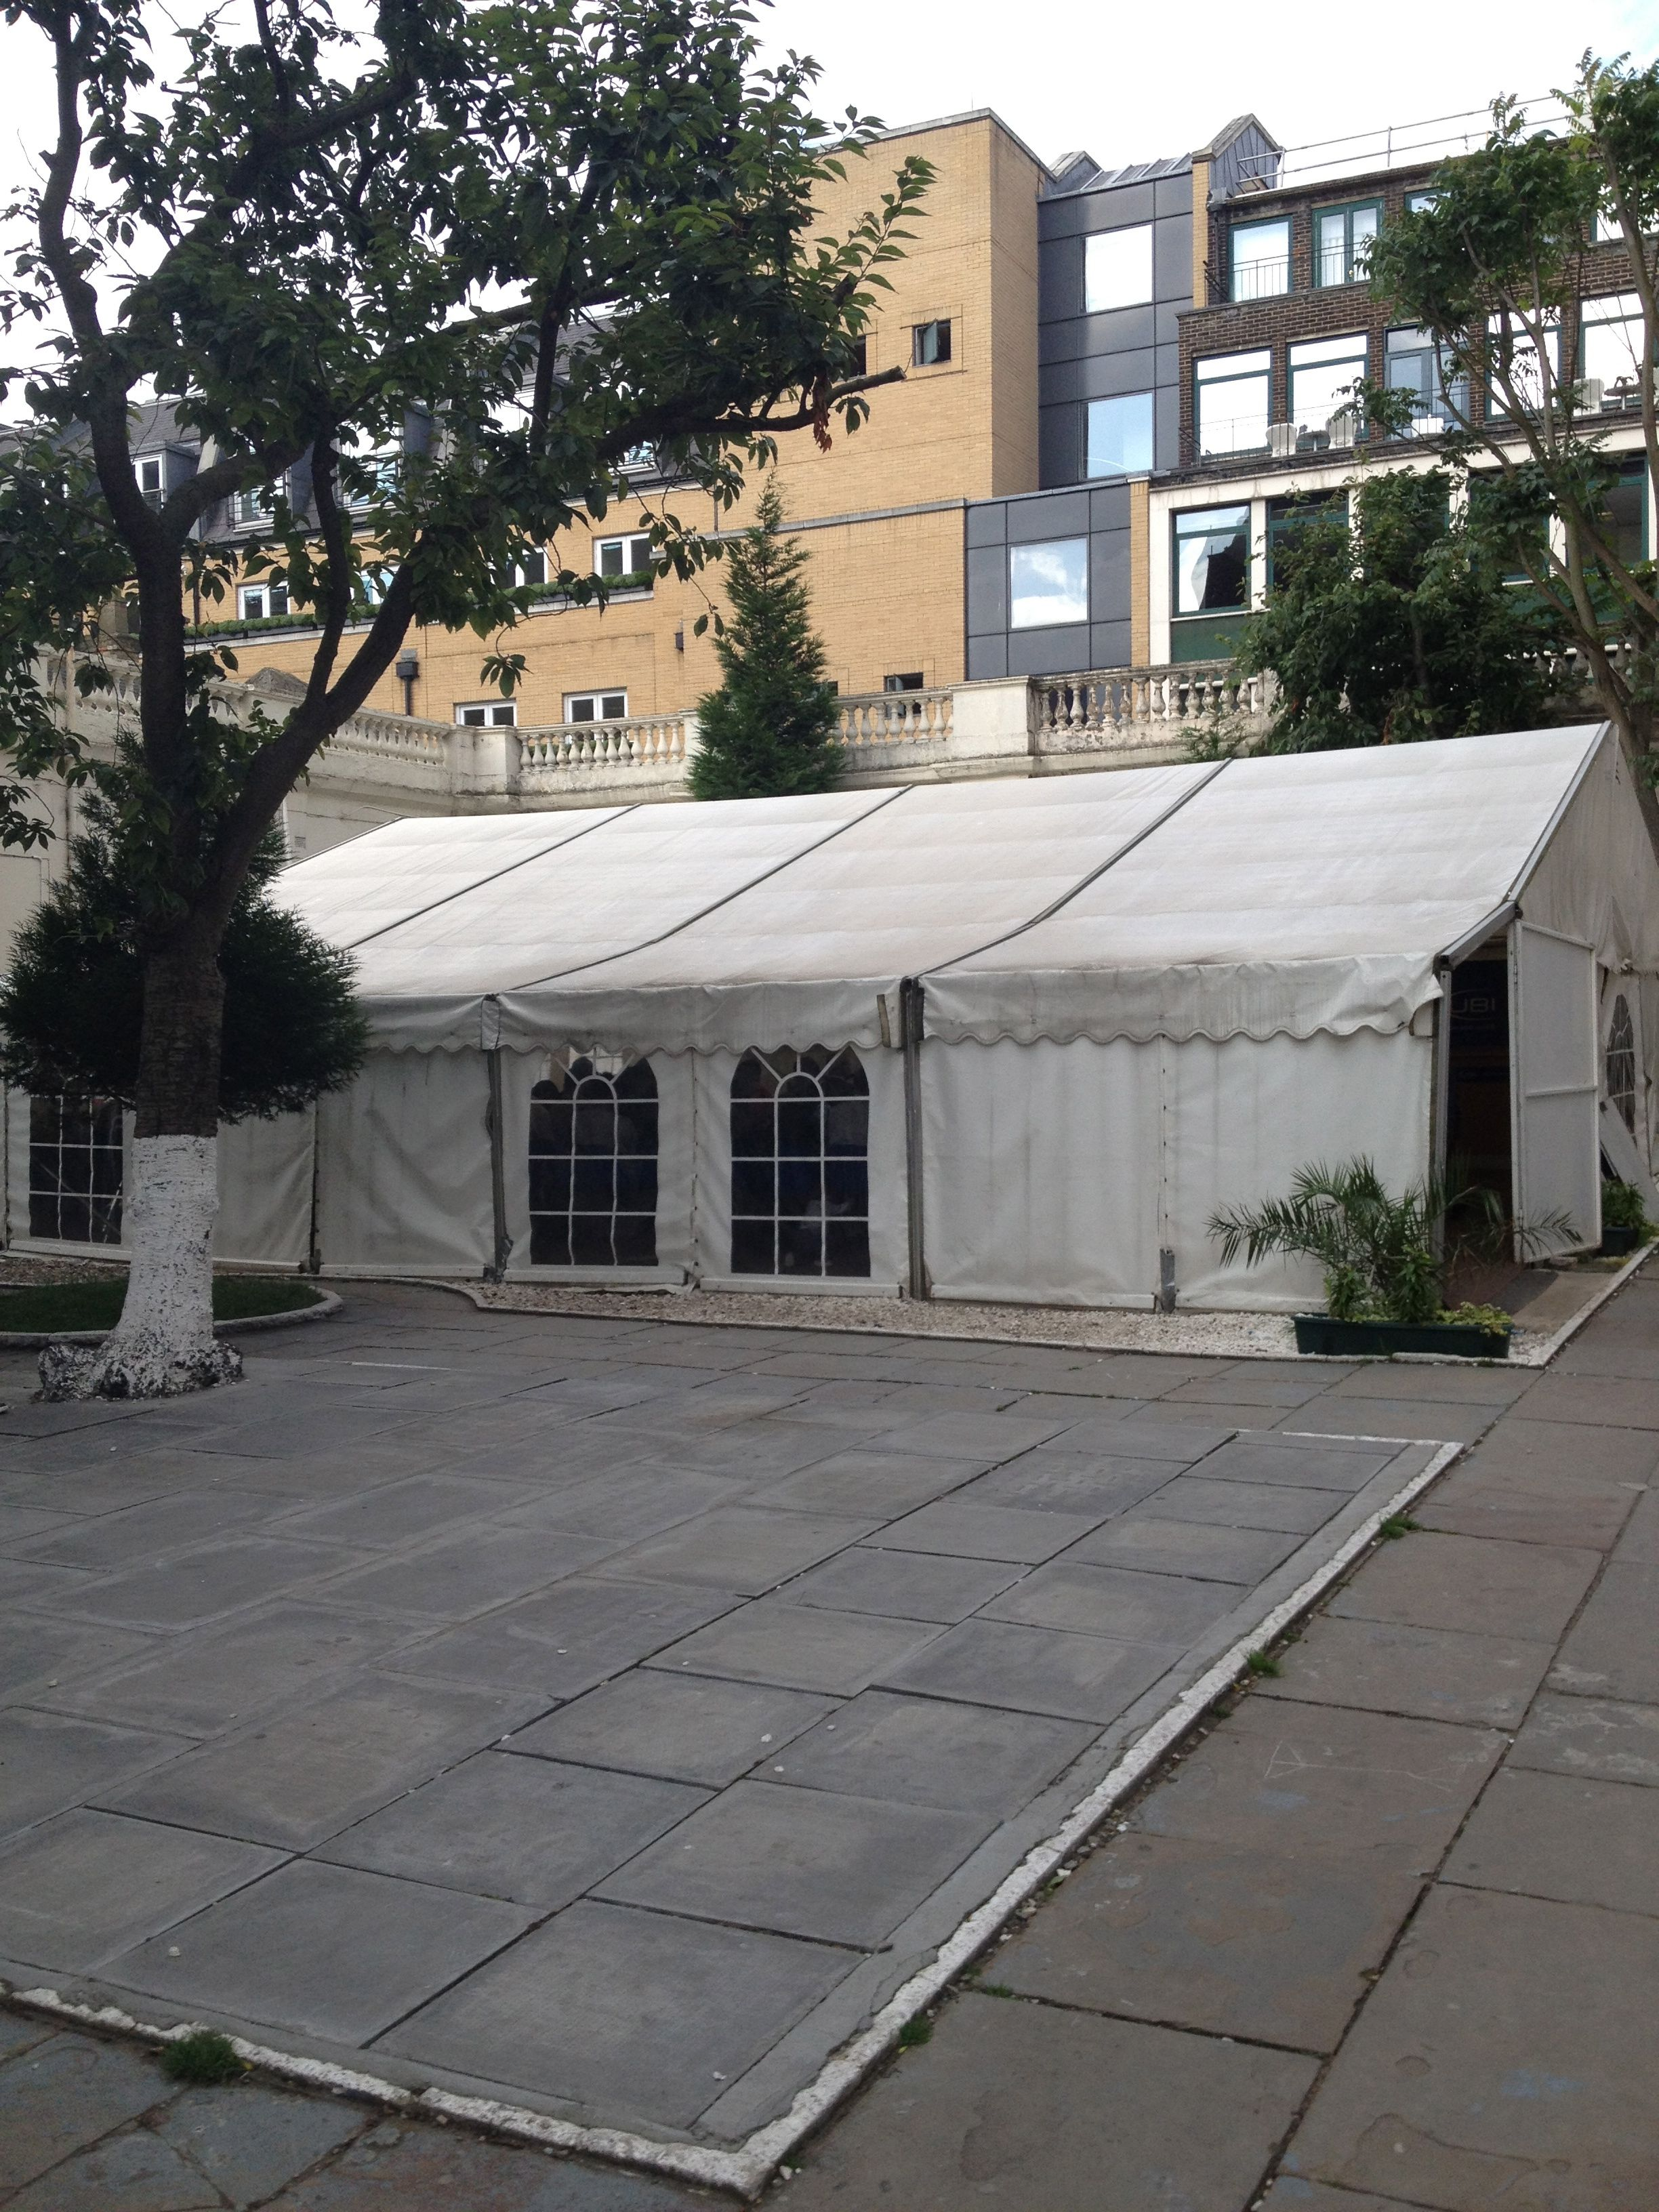 The visa tent  Oh Pakistan embassy in London you have gone